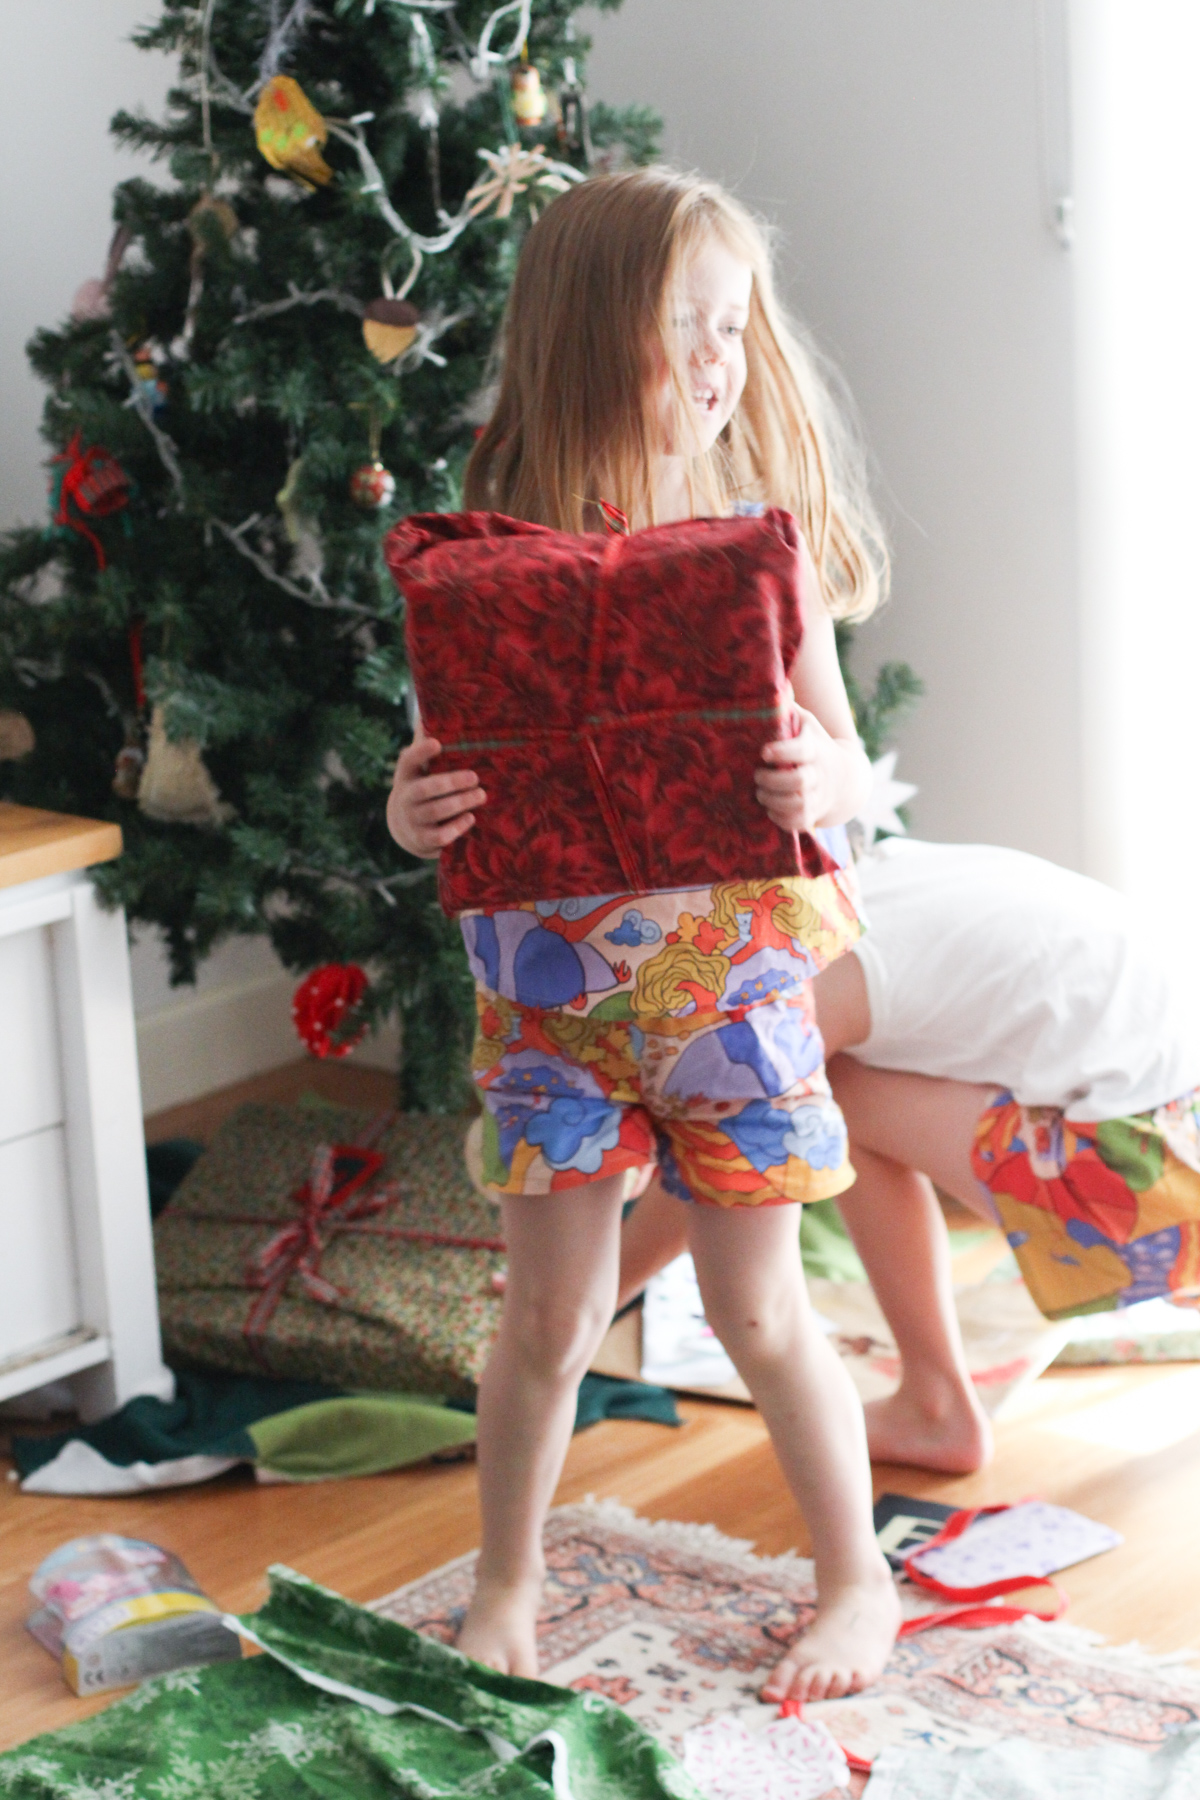 Birdie's 2019 Christmas Pajamas are a Mini Eucalypt tank and shorts both made from Ellie Whittaker Sunburst Country fabric.